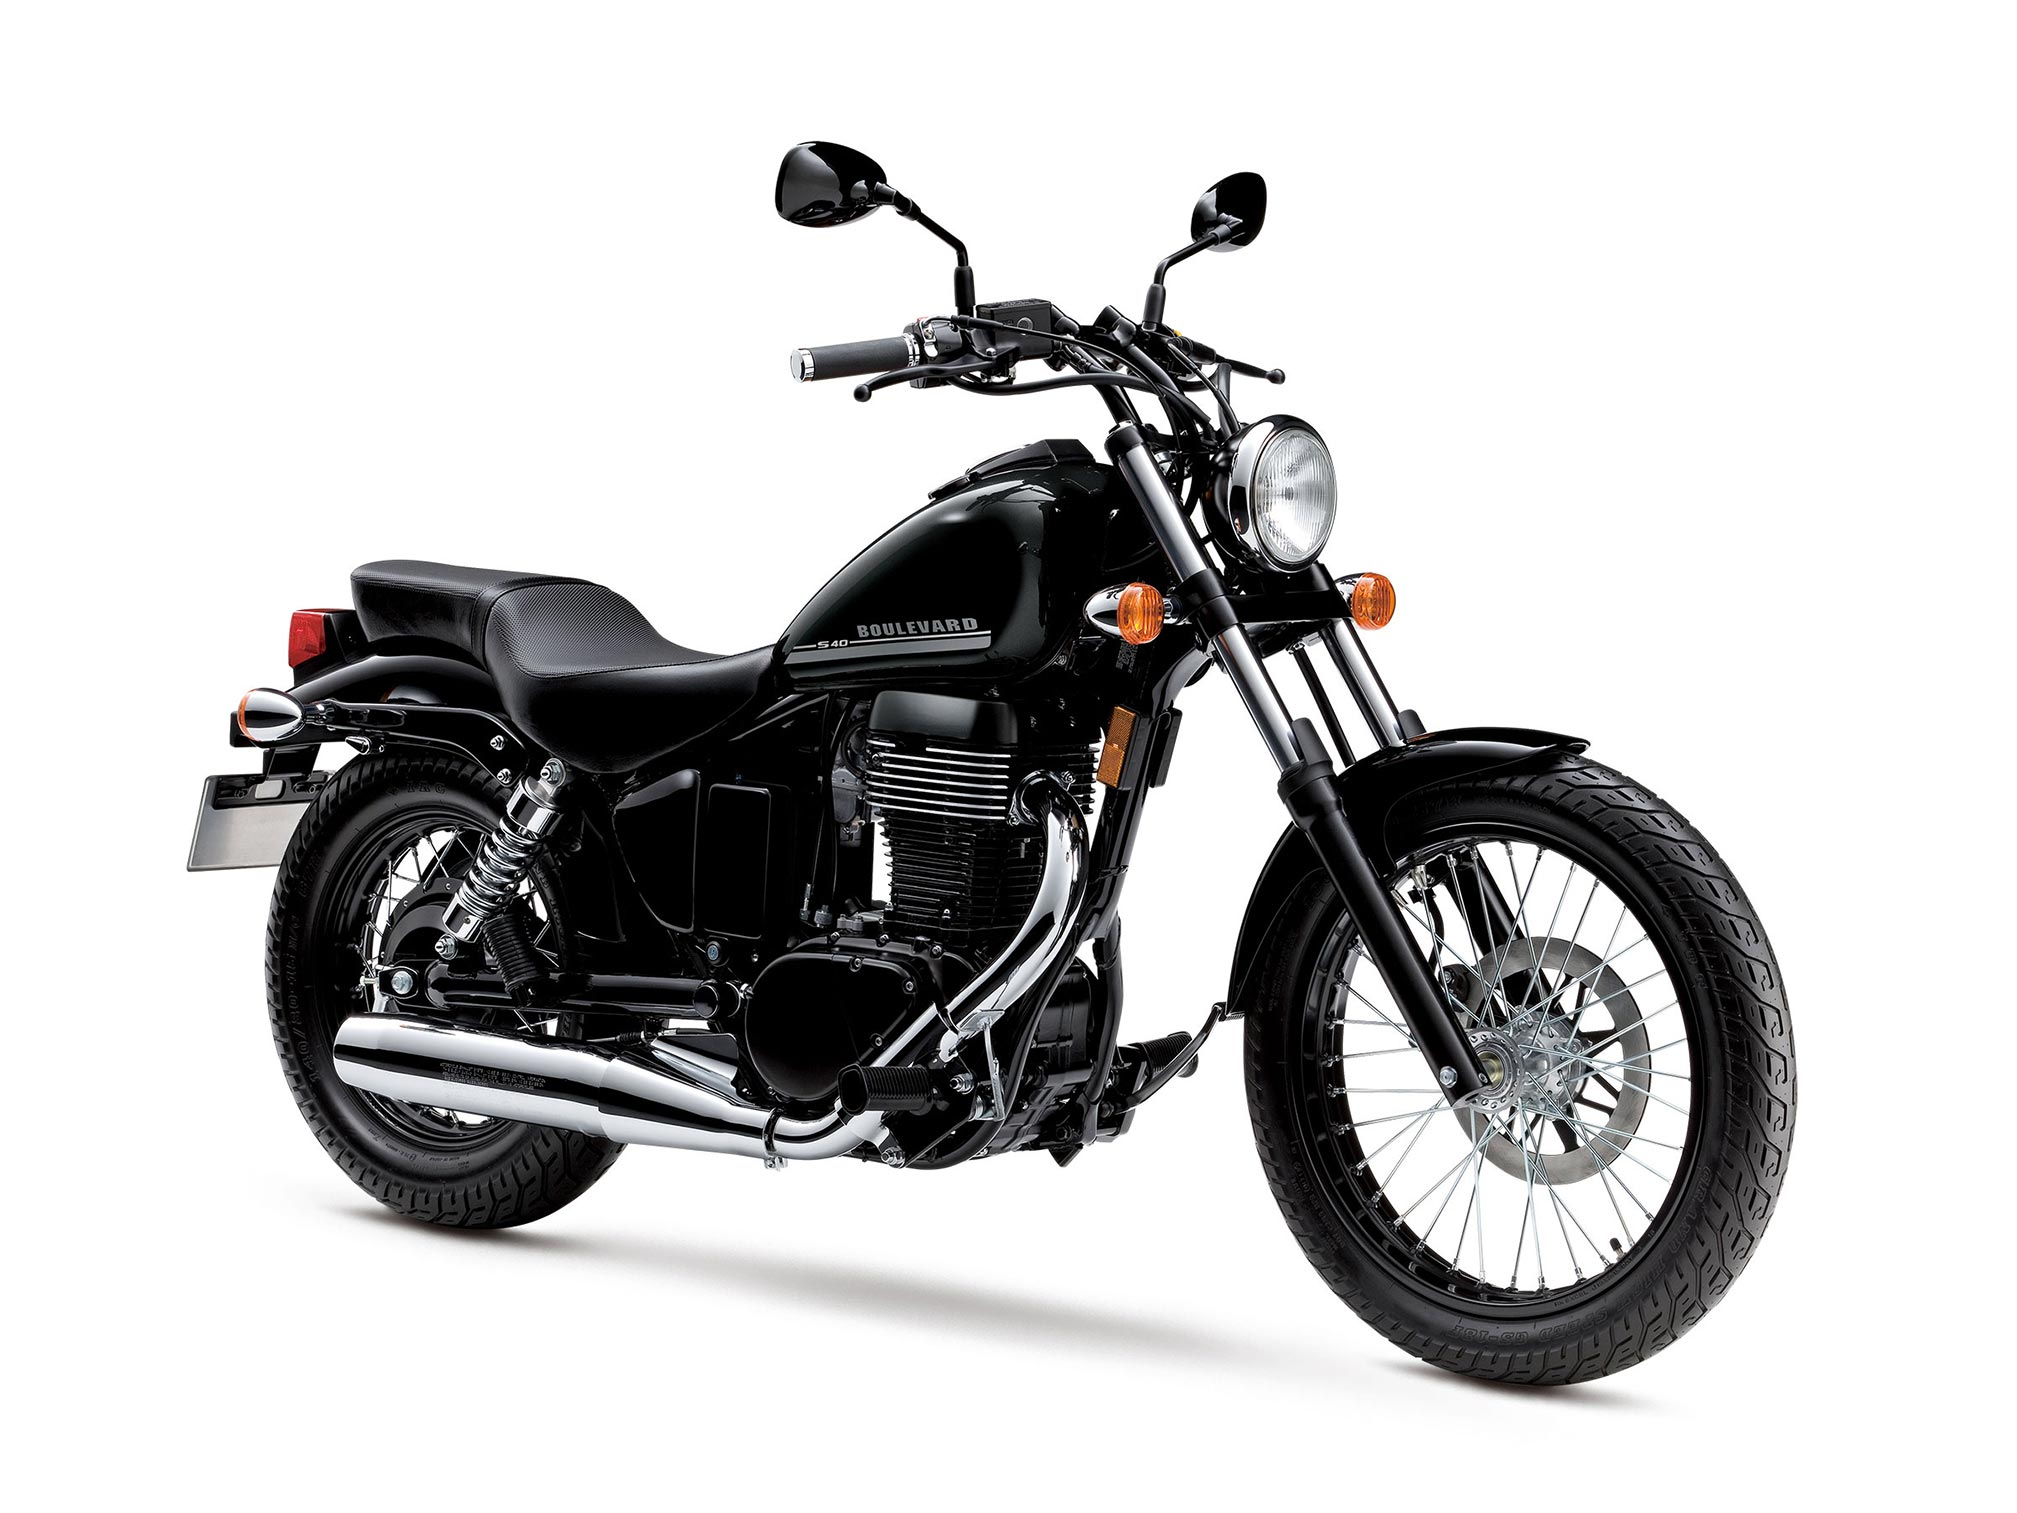 2017 suzuki boulevard s40 review. Black Bedroom Furniture Sets. Home Design Ideas